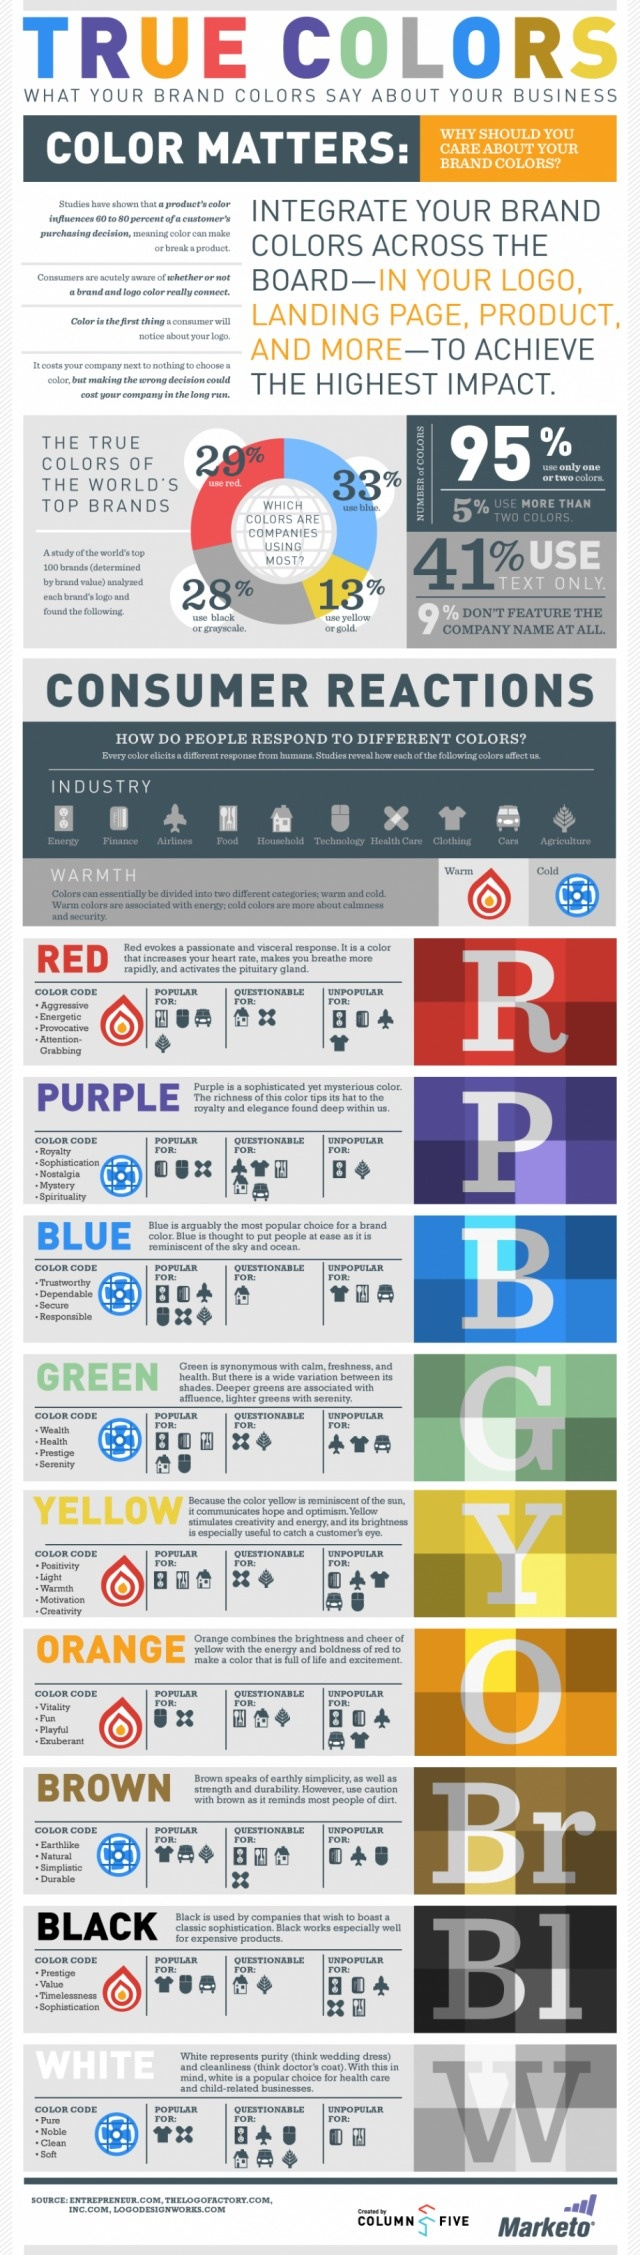 Why Colors Matter in Your Branding Strategy  Content, customer service and a loyal community is most important. How you package your services is very important - this article and infographic  has some good findings to help you understand the impact of certain colors and how people respond to them  #branding #socialbusiness #socialmedia  www.facebook.com/raysorsedgemarketing